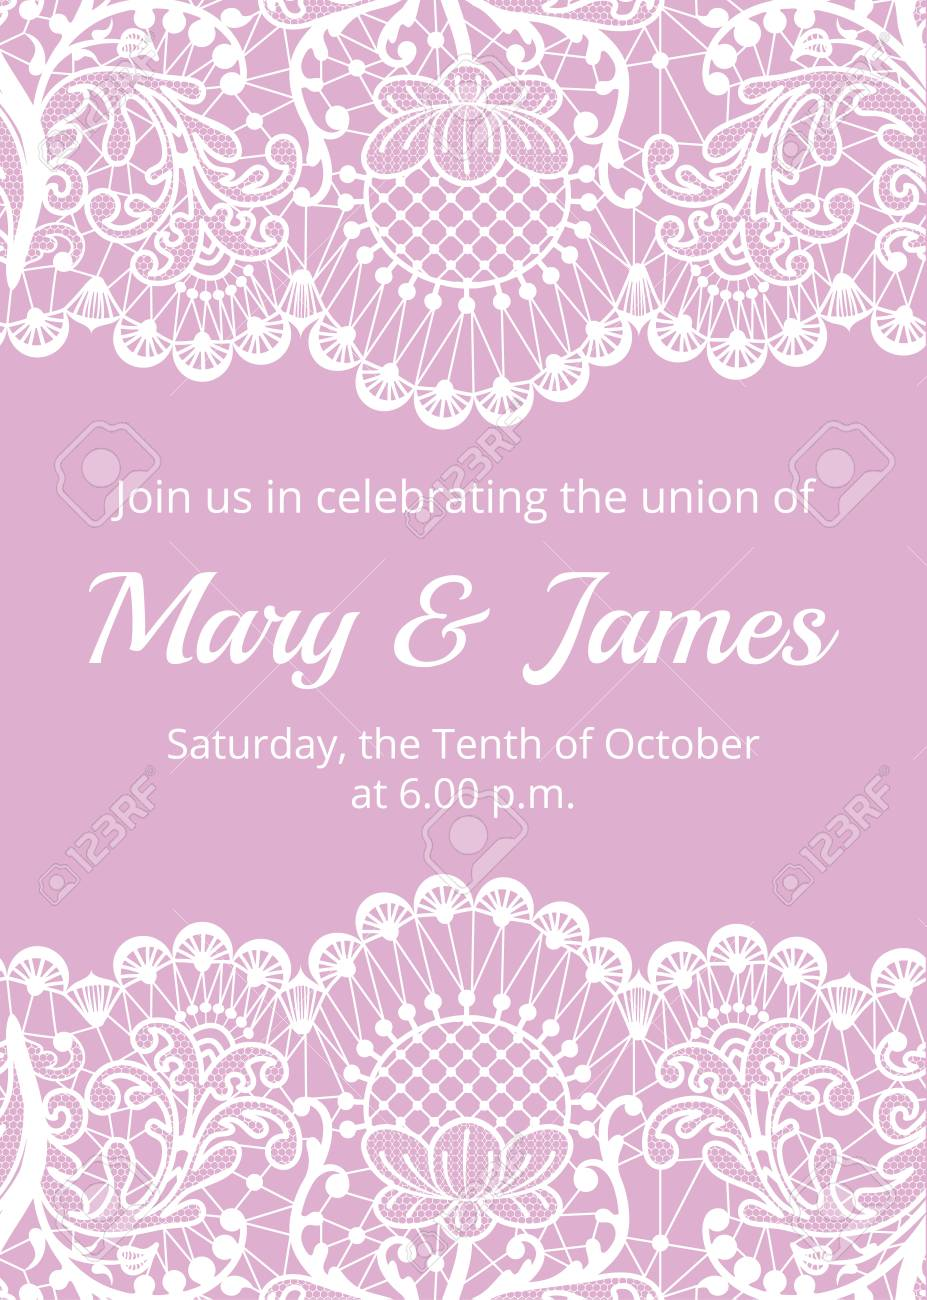 Wedding Invitation Template With White Lace Border On Pink Background